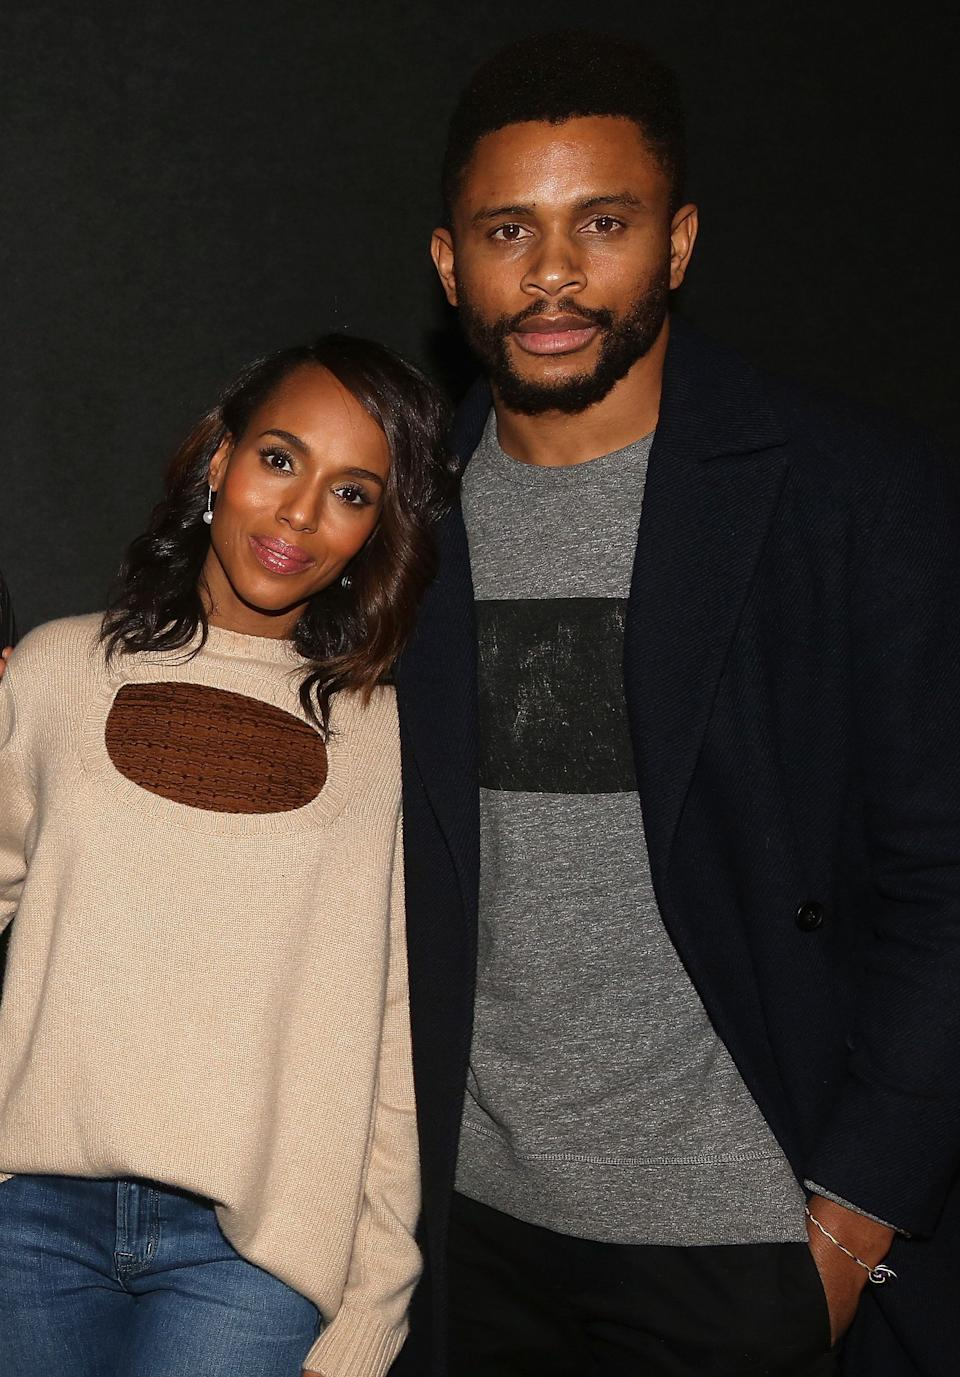 "<a href=""https://www.huffpost.com/entertainment/topic/kerry-washington"" target=""_blank"" rel=""noopener noreferrer"">Kerry Washington</a> is as good at keeping a secret as her ""Scandal"" character, Olivia Pope. The actress wed former San Francisco 49ers player Nnamdi Asomugha in 2013 and the couple reportedly now have <a href=""https://www.refinery29.com/en-us/2018/10/215400/kerry-washington-has-three-children"" target=""_blank"" rel=""noopener noreferrer"">three kids.</a> <br /><br><br><br />During a <a href=""https://www.eonline.com/news/748602/kerry-washington-speaks-out-on-nnamdi-asomugha-divorce-rumors"" target=""_blank"" rel=""noopener noreferrer"">2016 South by Southwest panel</a> in Austin, Washington opened up about why she prefers to keep her private life private. <br /><br><br><br />""If I don't talk about my personal life, it means I don't talk about my personal life,"" <a href=""https://www.eonline.com/news/748602/kerry-washington-speaks-out-on-nnamdi-asomugha-divorce-rumors"" target=""_blank"" rel=""noopener noreferrer"">she said.</a> ""That means not only did I not tell you when I was getting married, it also means if somebody has rumors about what's going on in my marriage, I don't refute them, because I don't talk about my personal life."""